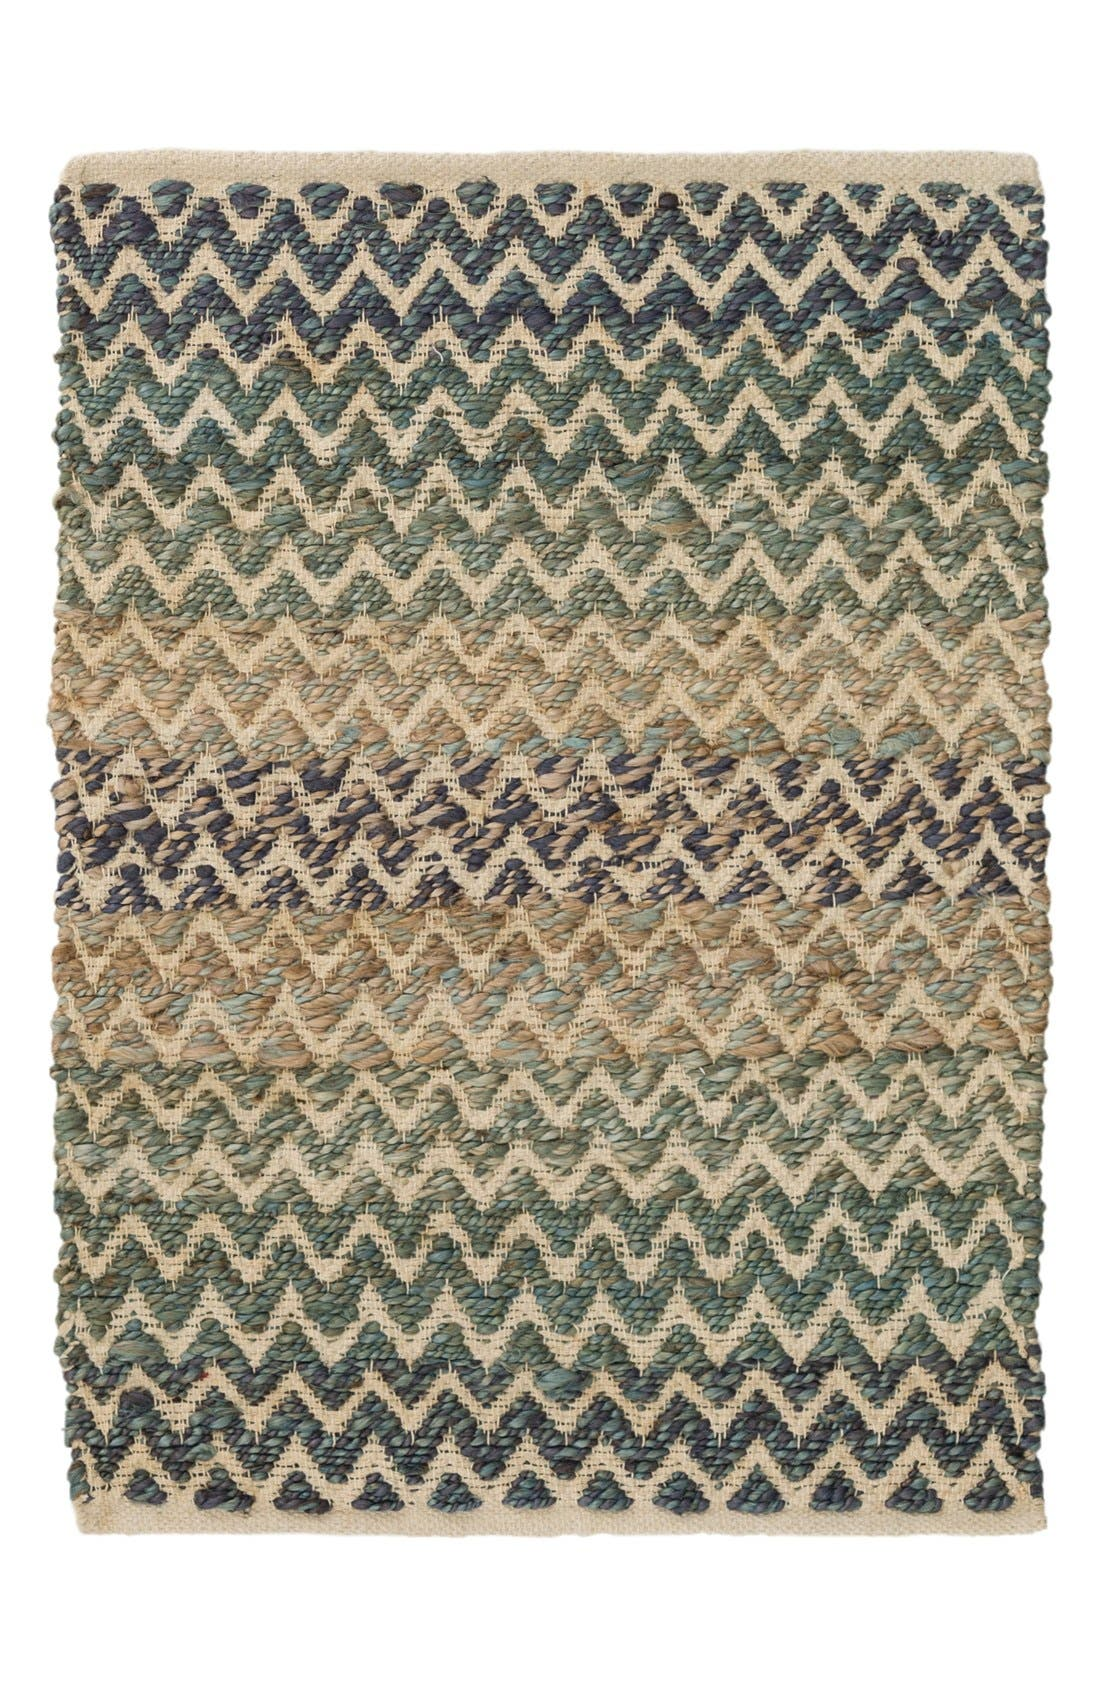 Cousteau Handwoven Rug,                         Main,                         color, Green/ Blue